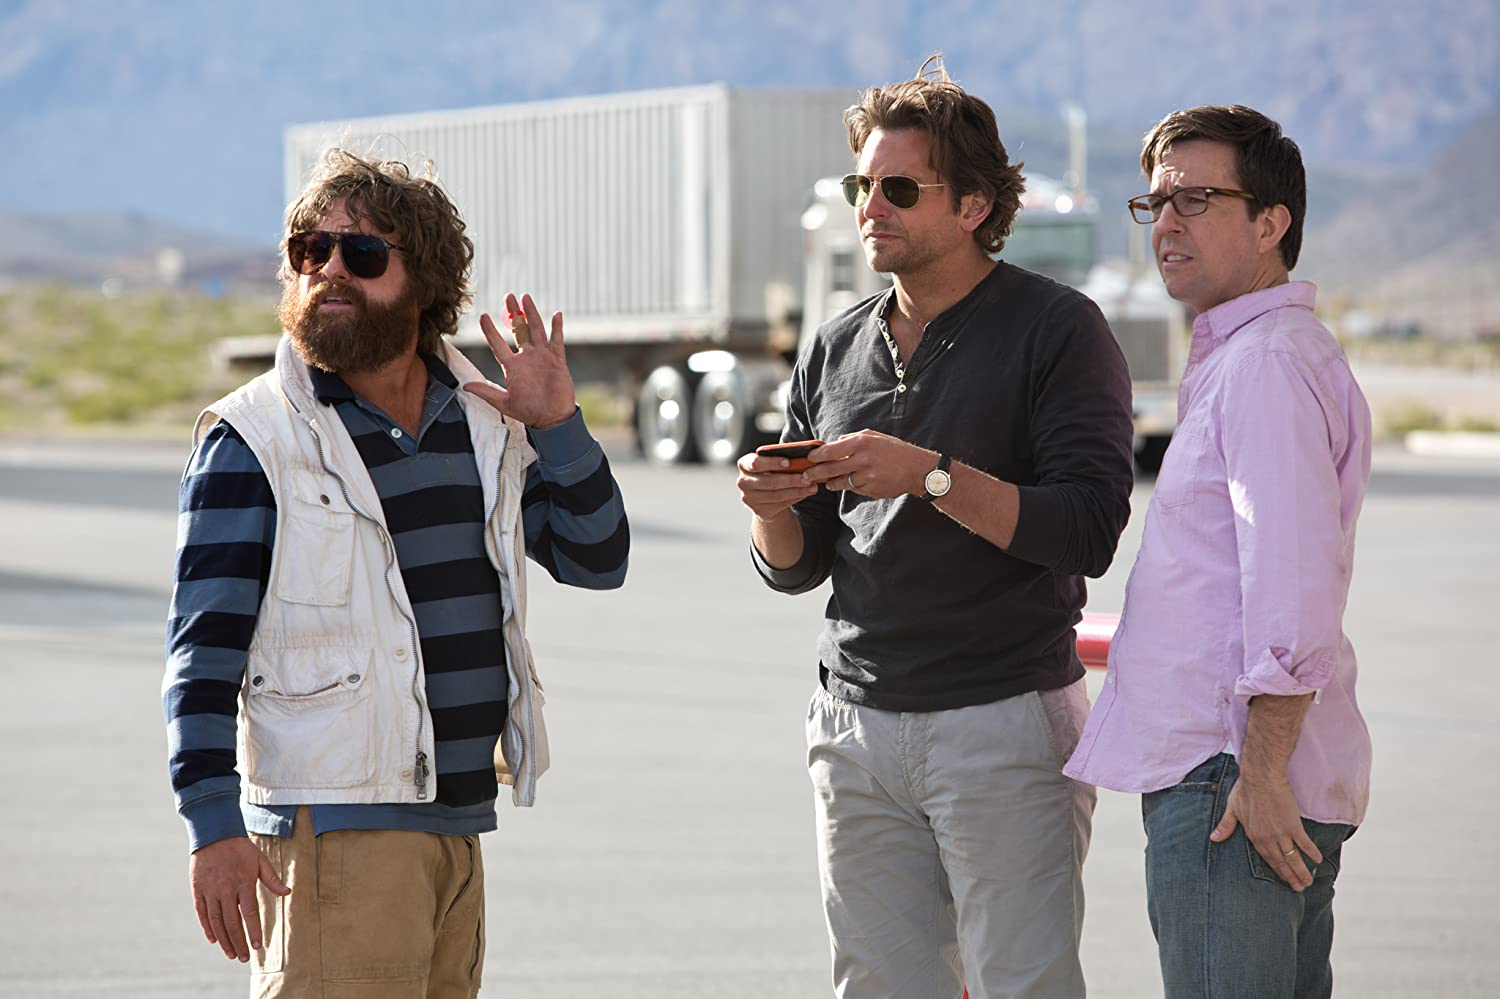 Bradley Cooper, Zach Galifianakis, and Ed Helms in The Hangover Part III (2013)